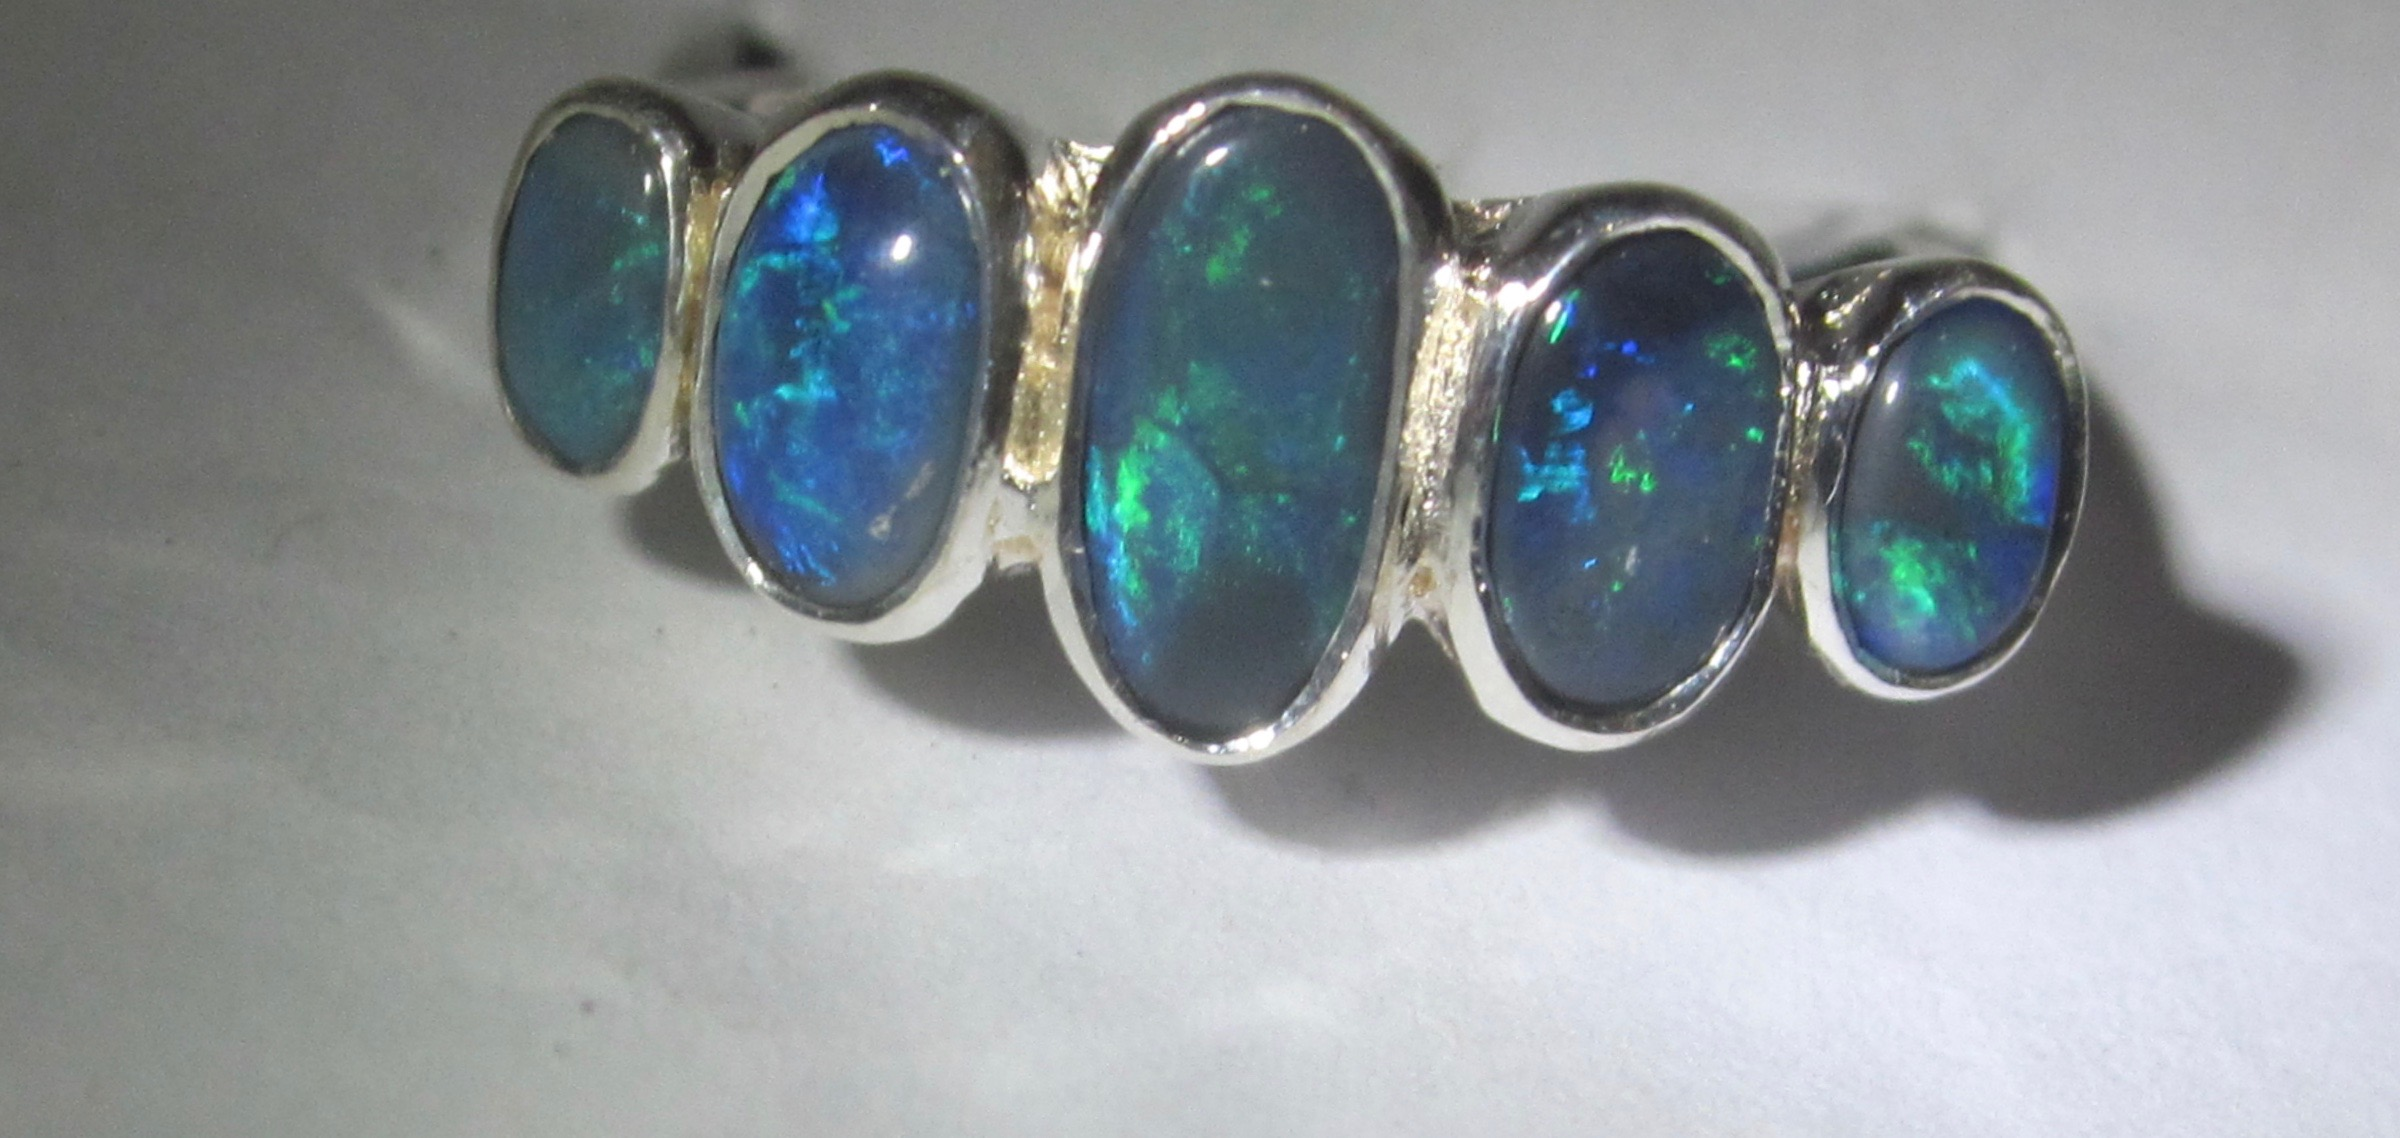 australian opal ring,opal ring,opal rings,opal jewellery,ring,rings,jewelry